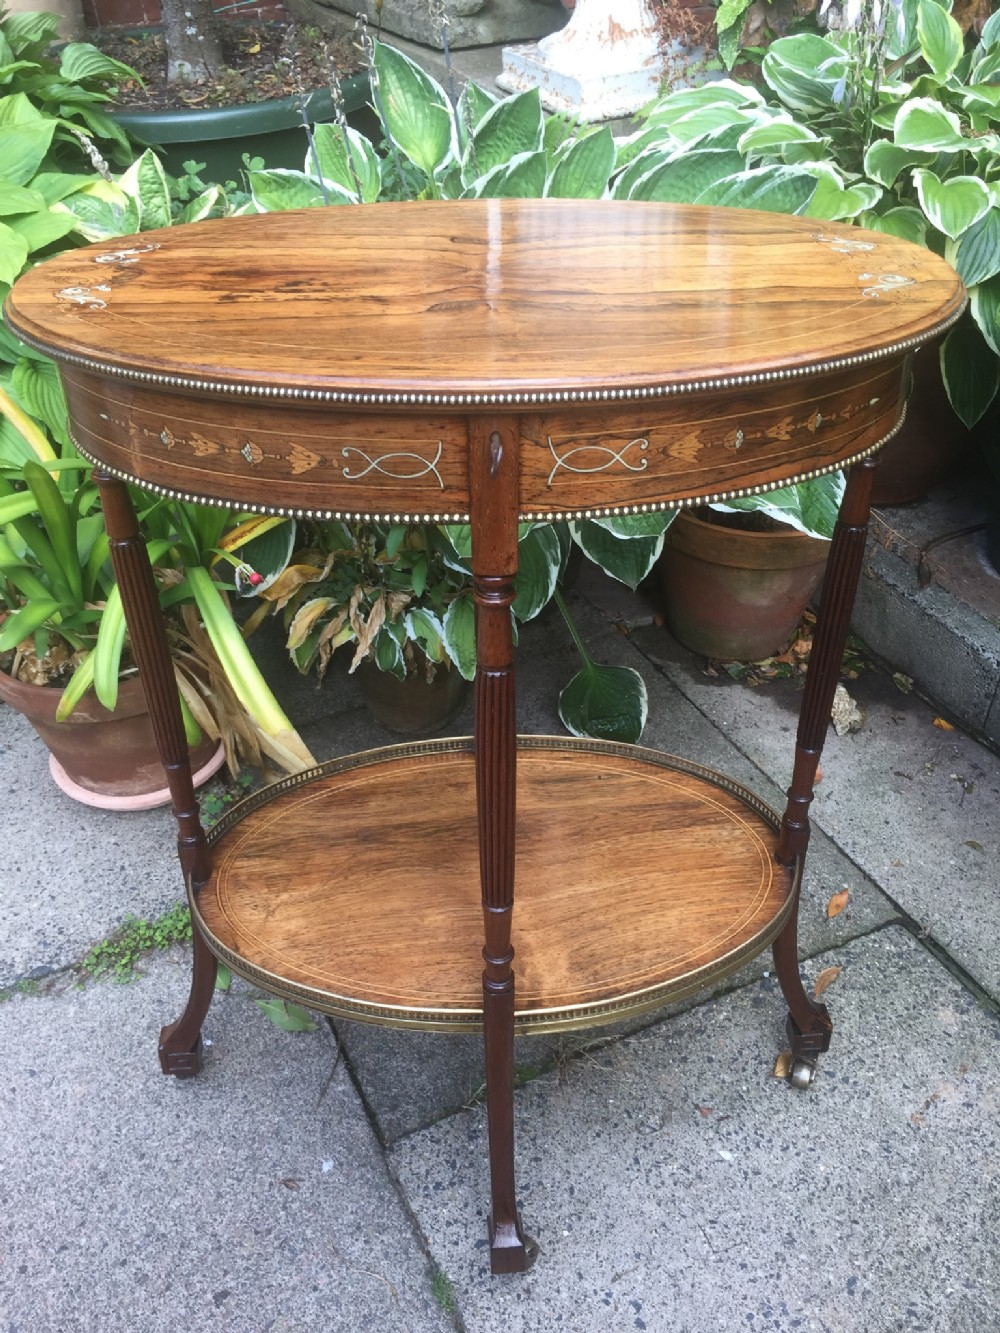 fine quality late c19th oval rosewood bijouterie table with boxwood and ivory inlay by james shoolbred colondon